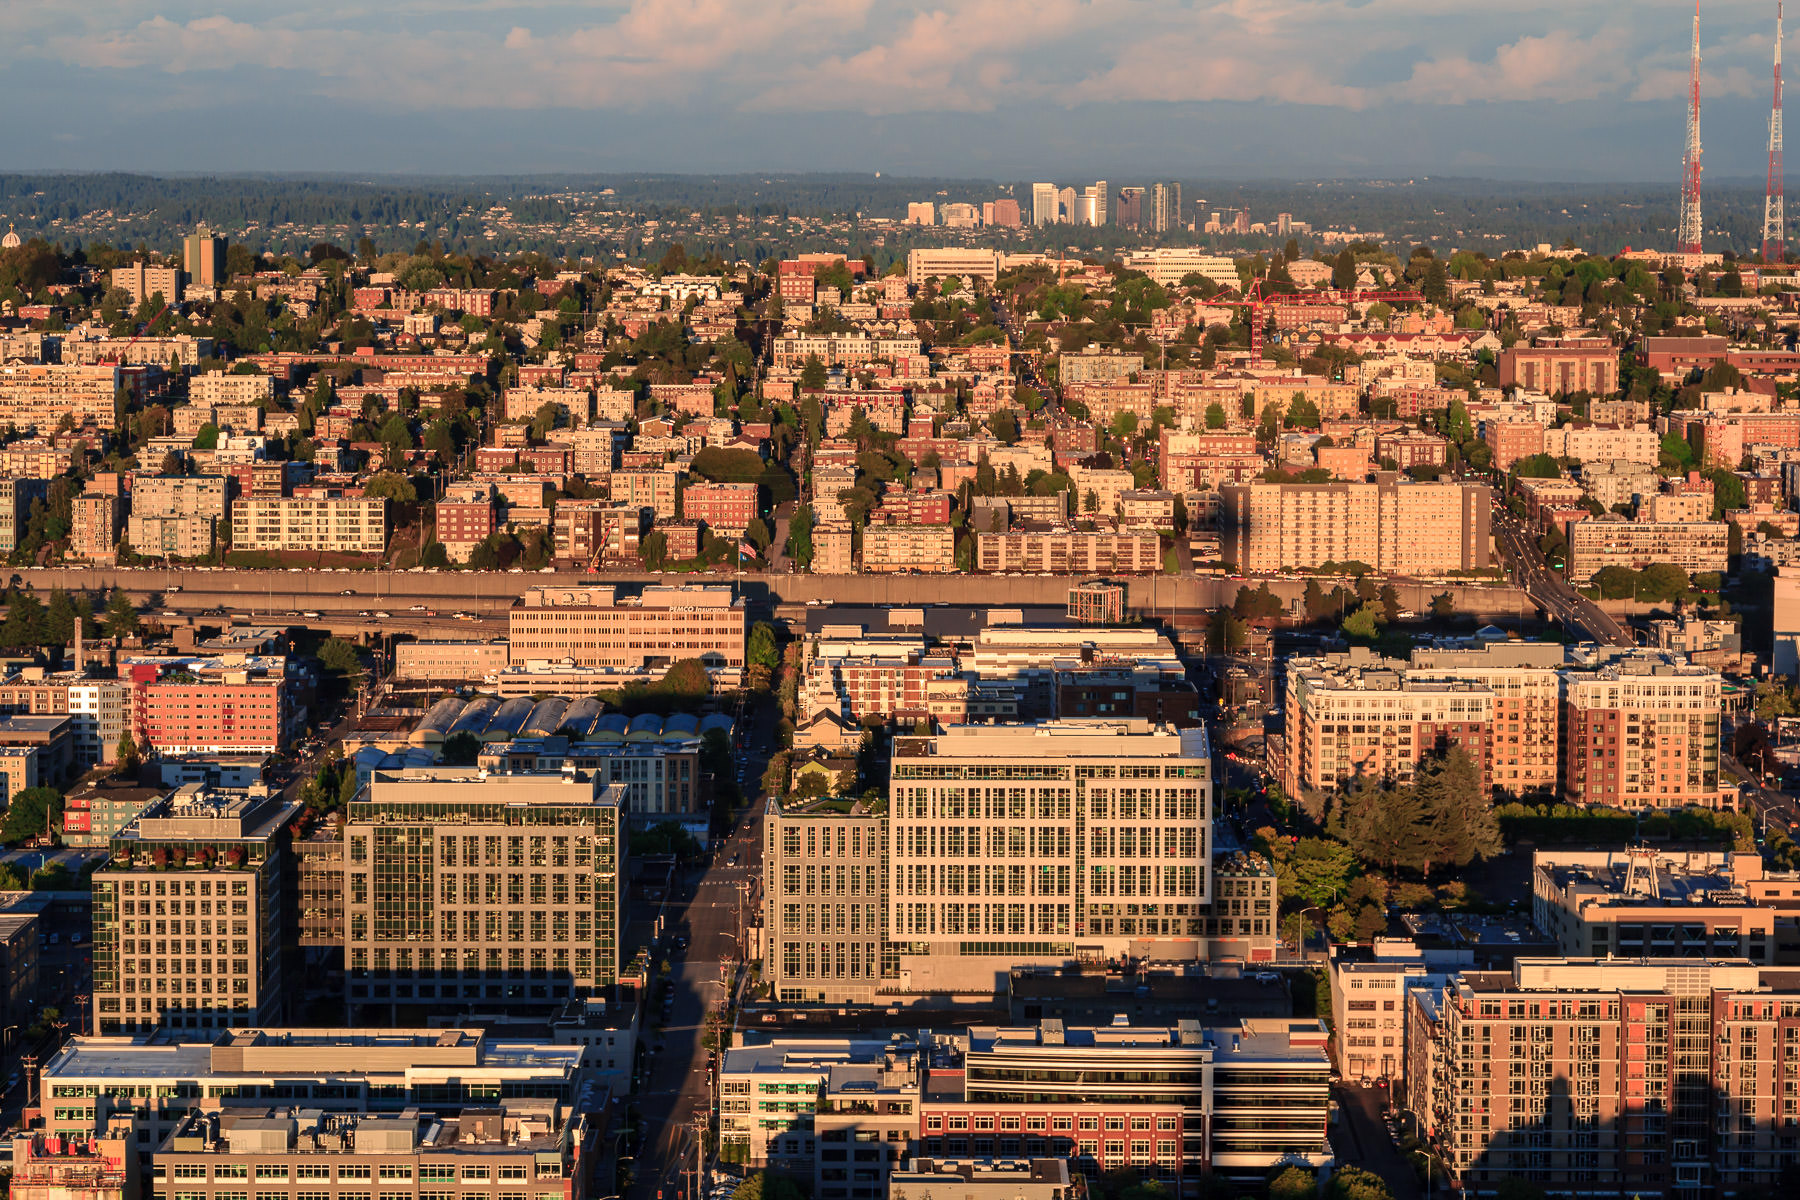 Seattle's Queen Anne neighborhood stretches into the distance as the sun sets on the city.